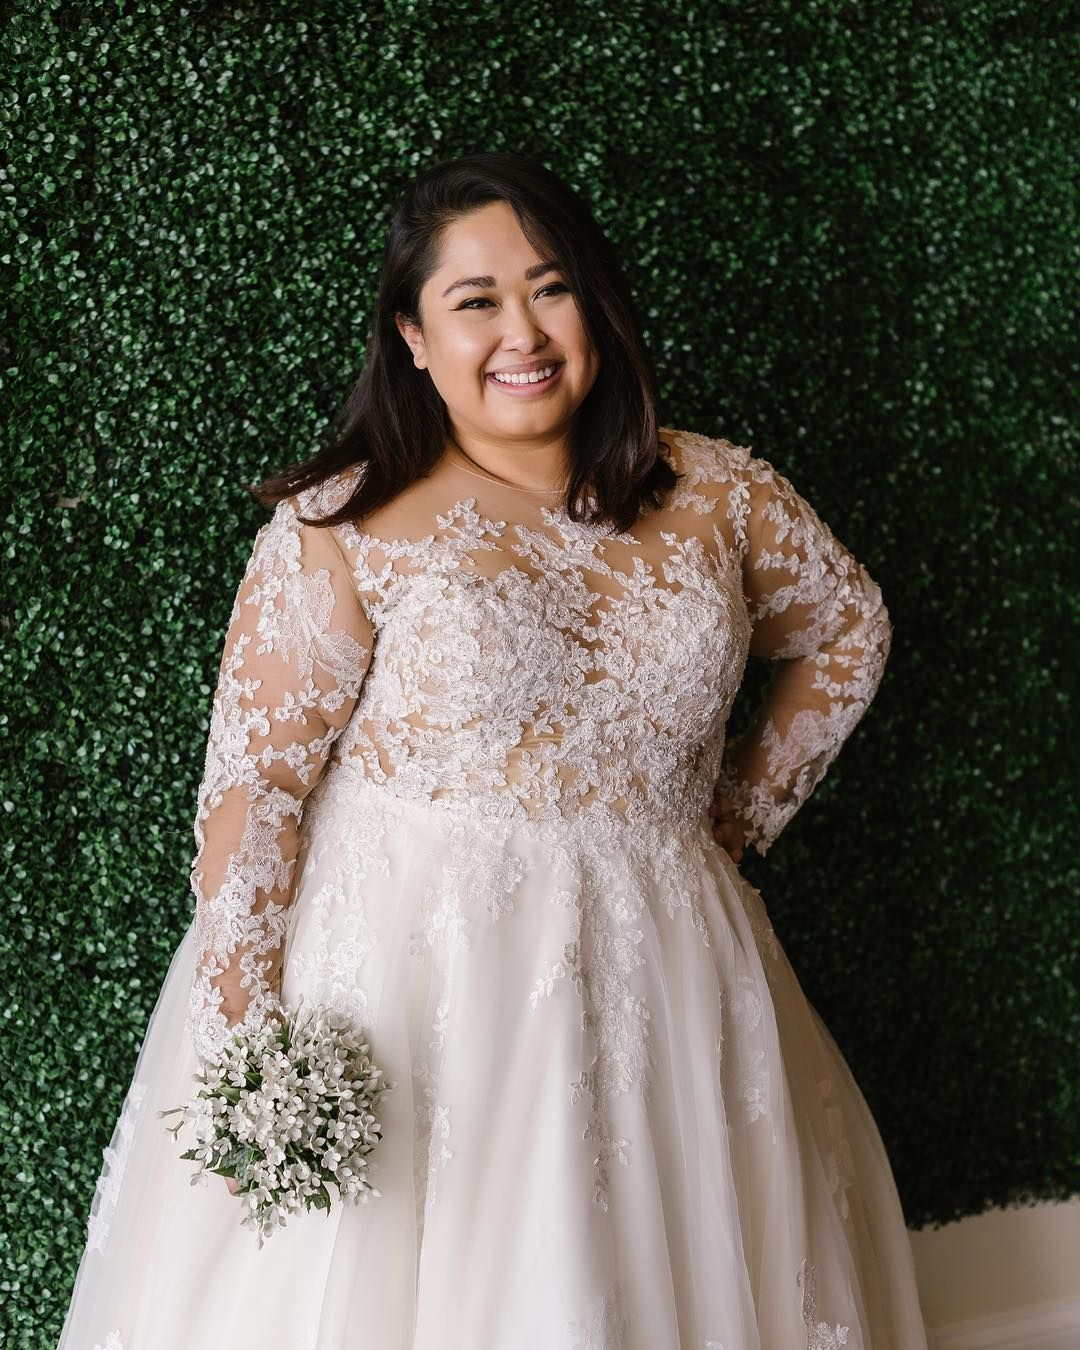 Plus Size Brides Can Have Custom Wedding Gowns And Replicas For Less Plus Size Bridal Dresses Plus Size Wedding Gowns Plus Size Brides [ 1350 x 1080 Pixel ]